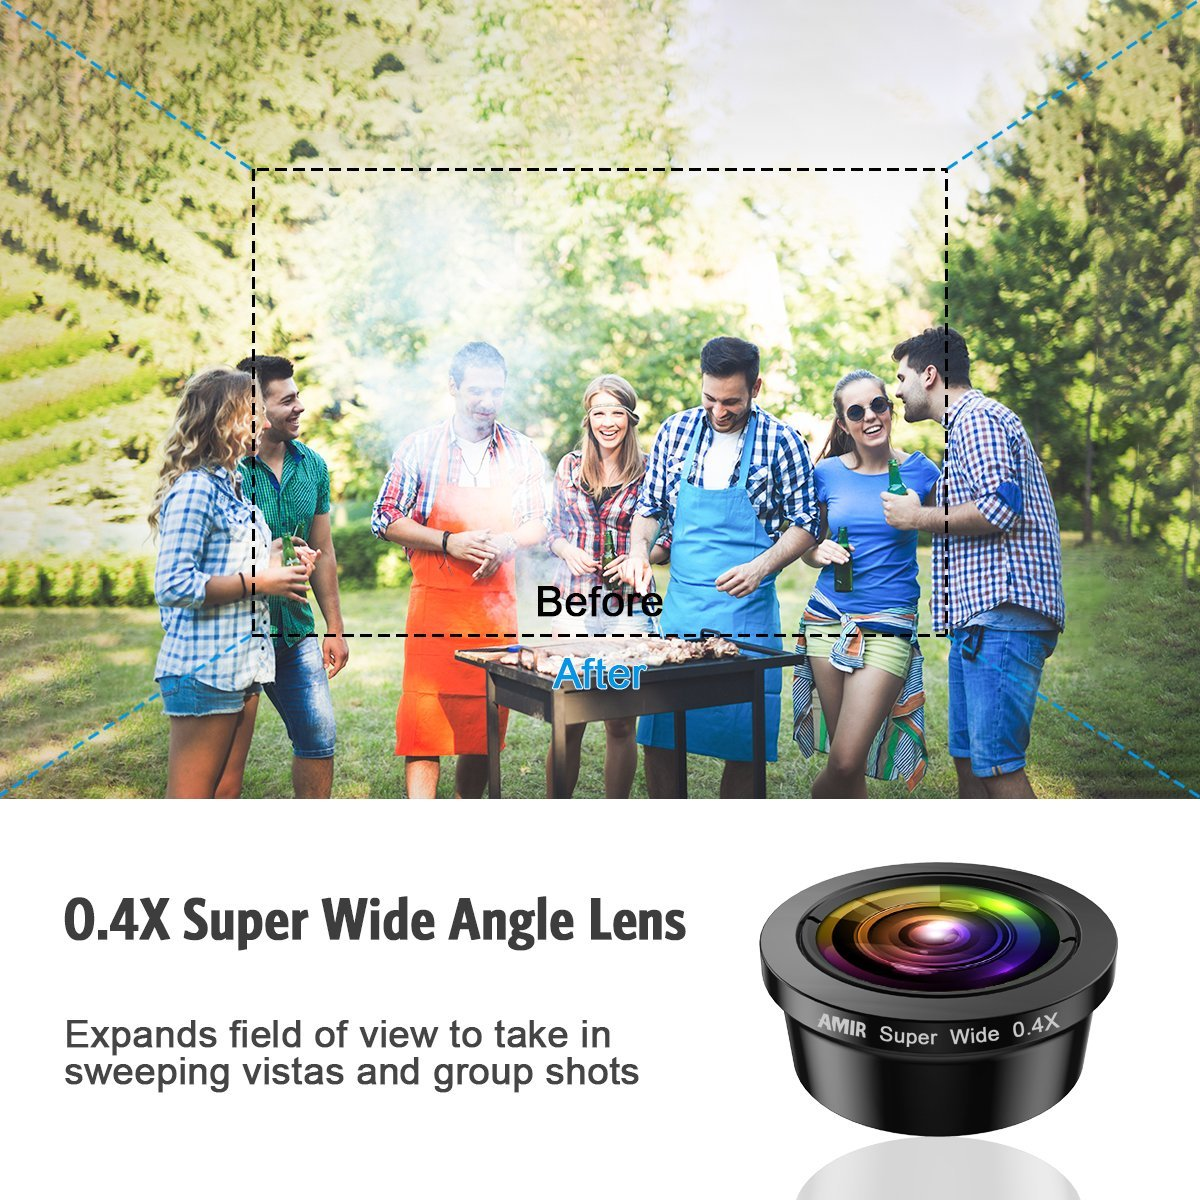 [Upgraded] AMIR For iPhone Camera Lens, 0.4X Super Wide Angle Lens + 195° Fisheye Lens & 15X Macro Lens, 3 IN 1 Cell Phone Camera Lens For iPhone X, iPhone 8/7 Plus, Samsung, Other Smartphones by AMIR (Image #2)